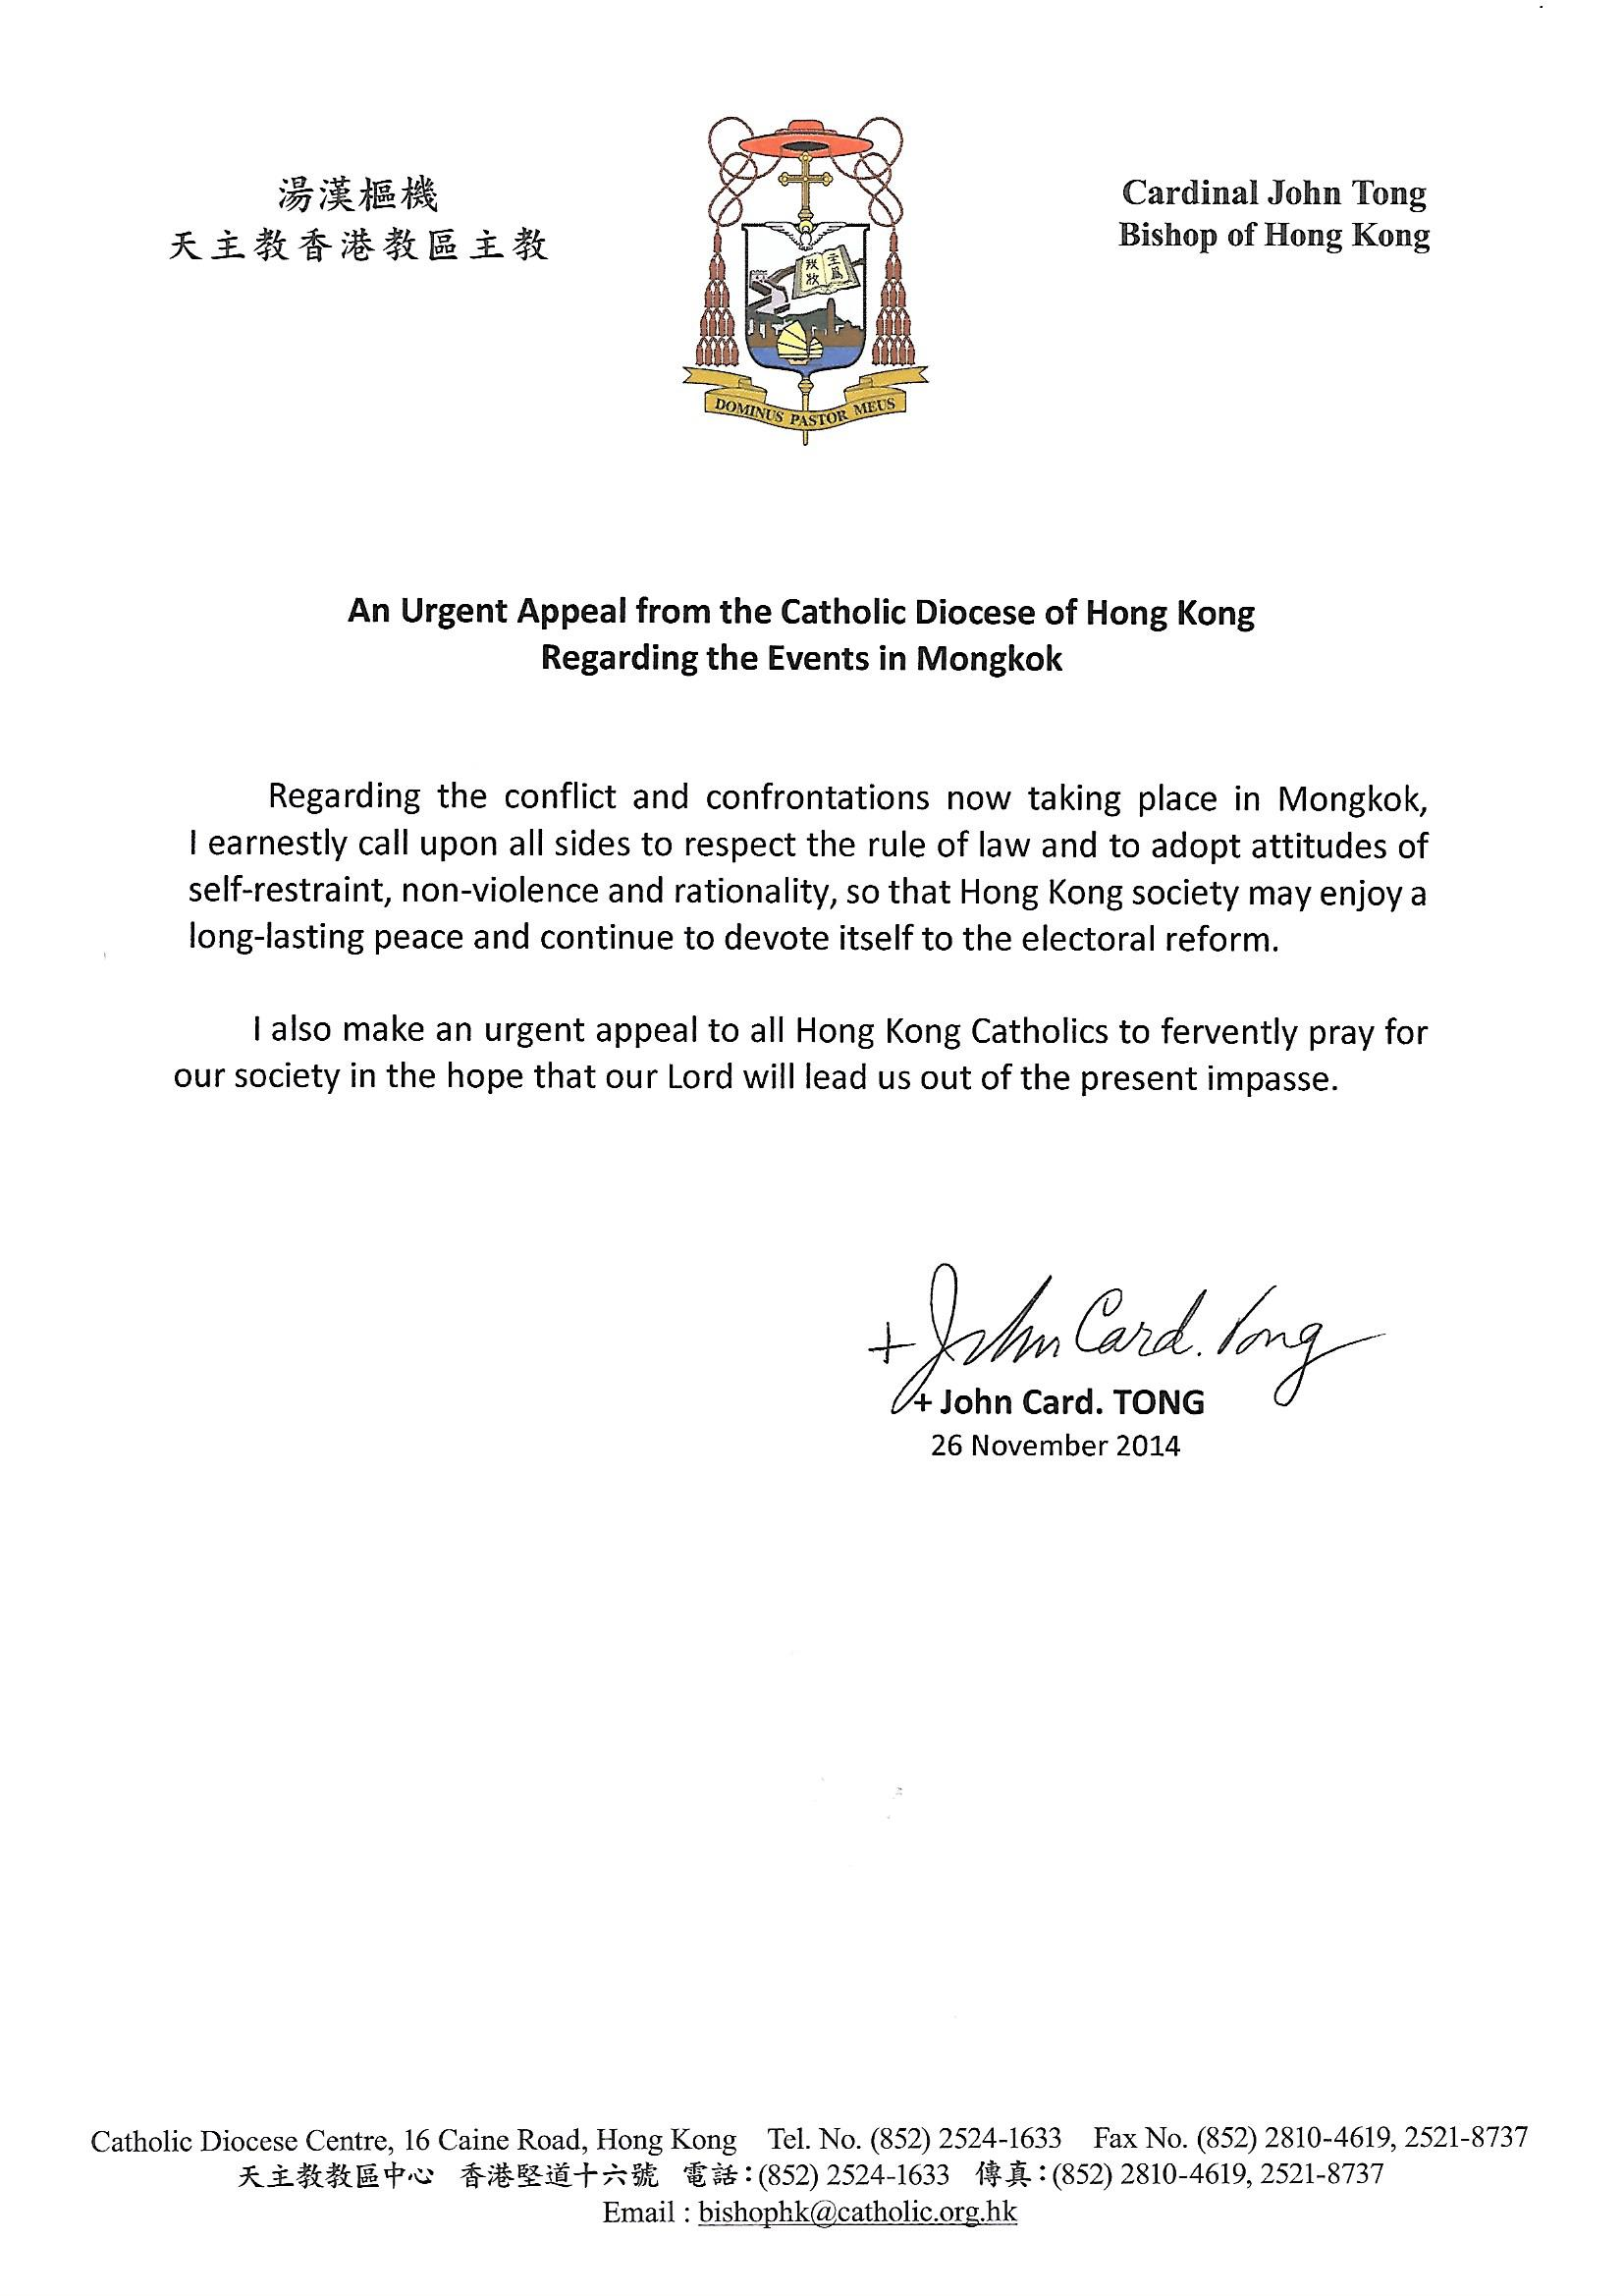 letter-from-cardinal-john-tong_Page_2